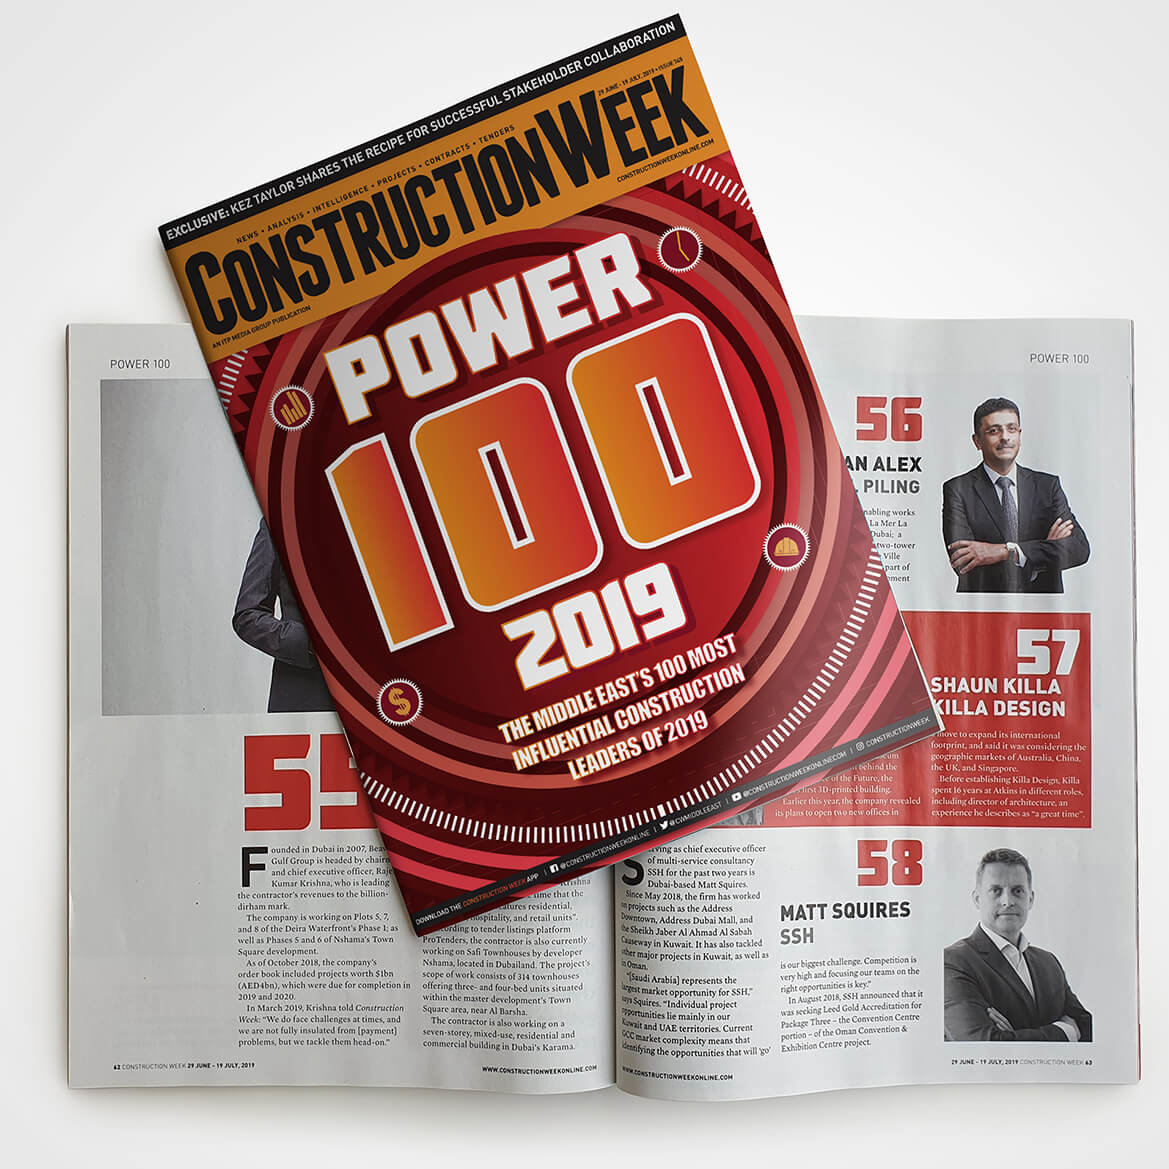 SSH's Matt Squires Climbs 11 Places in the 2019 Construction Week Power 100